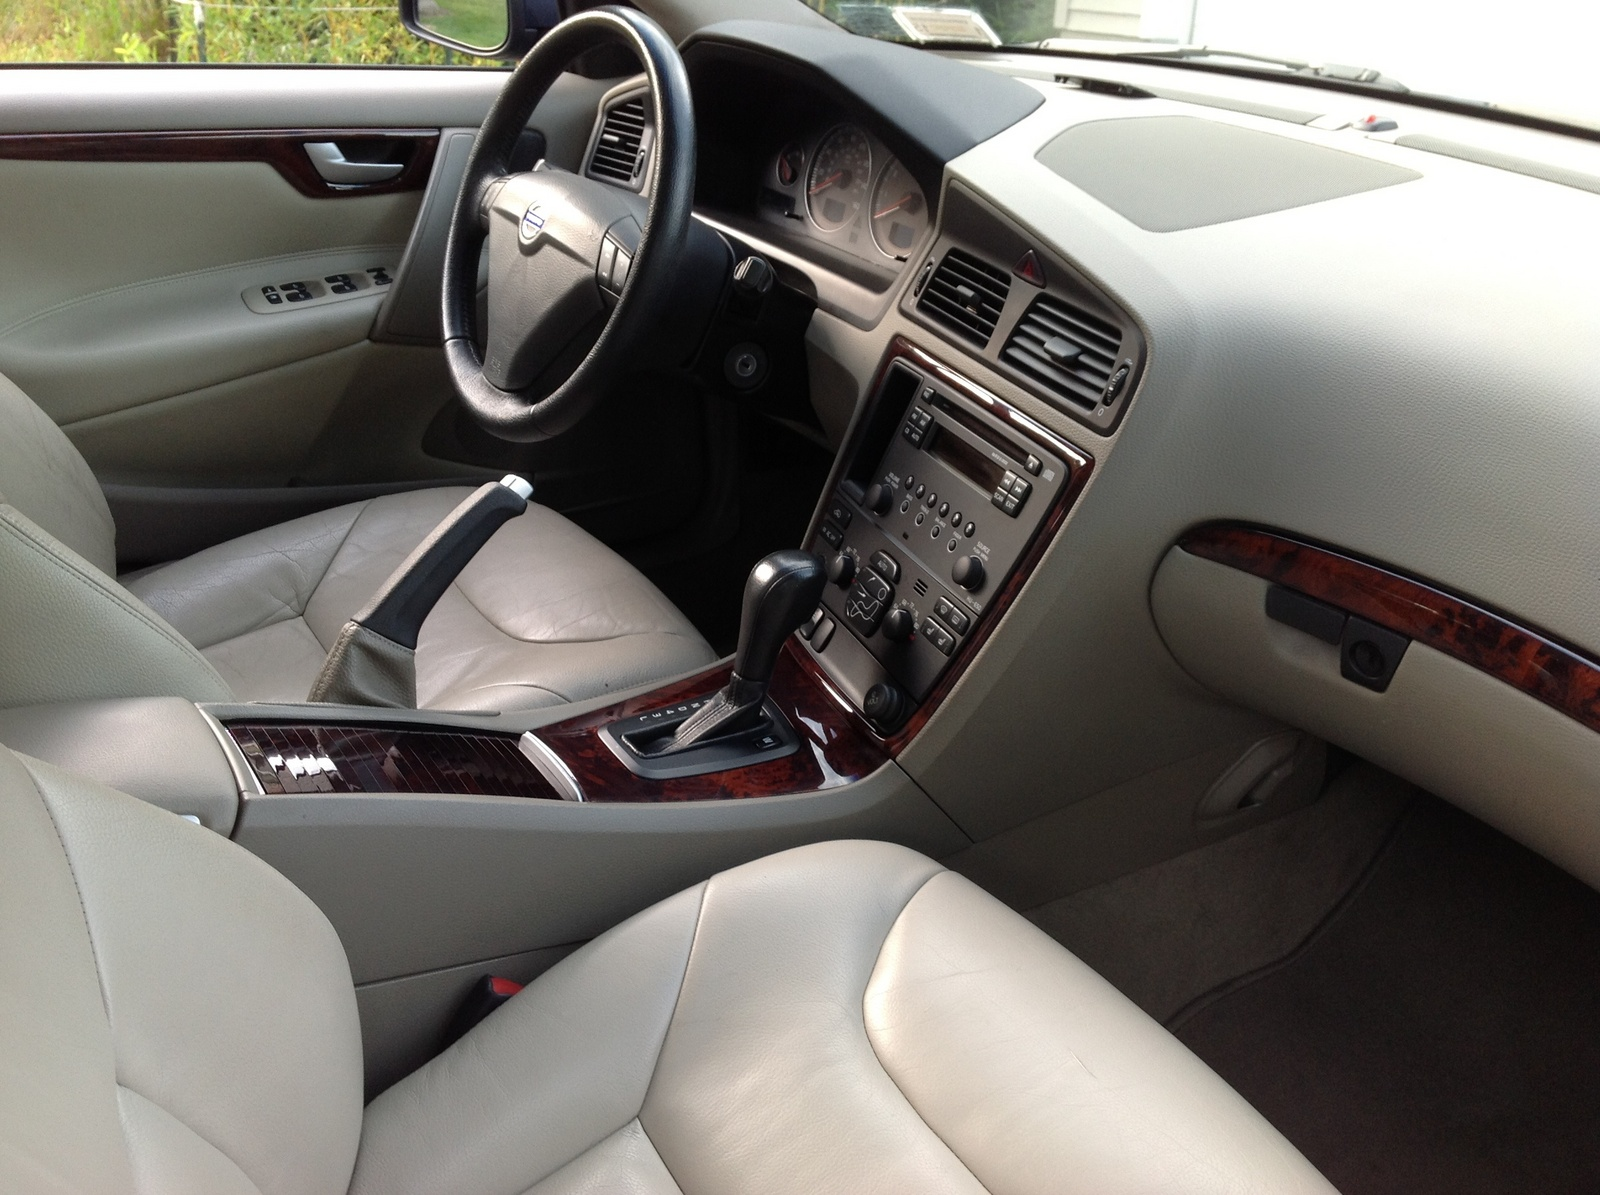 Volvo S T Awd Pic on 2005 Volvo S40 Interior